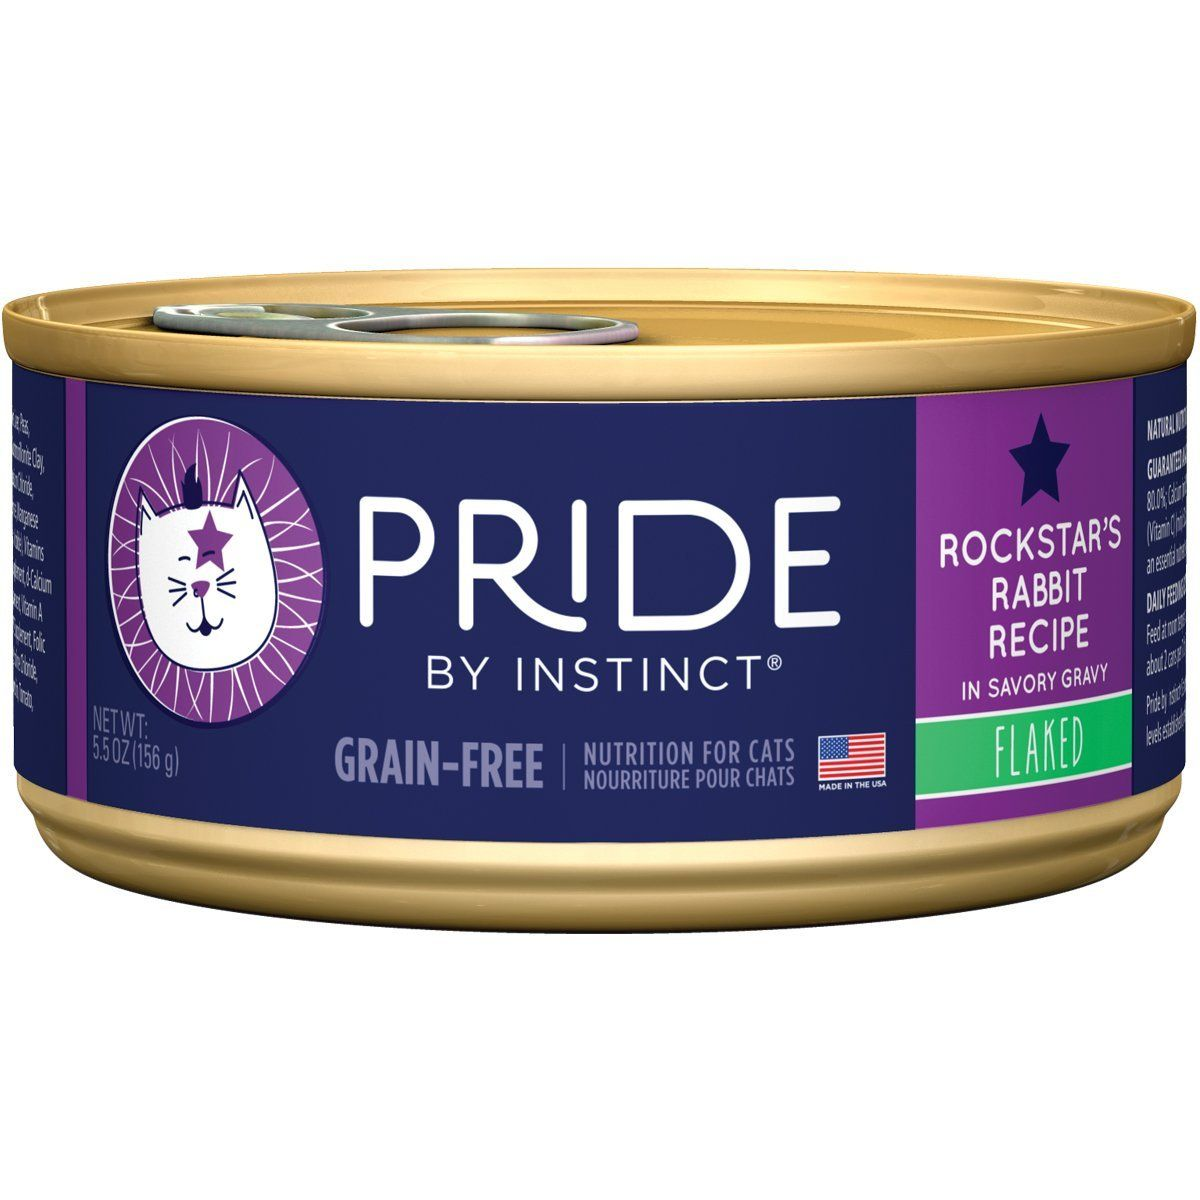 Pride by Instinct Rockstar Rabbit Flaked Recipe Canned Cat